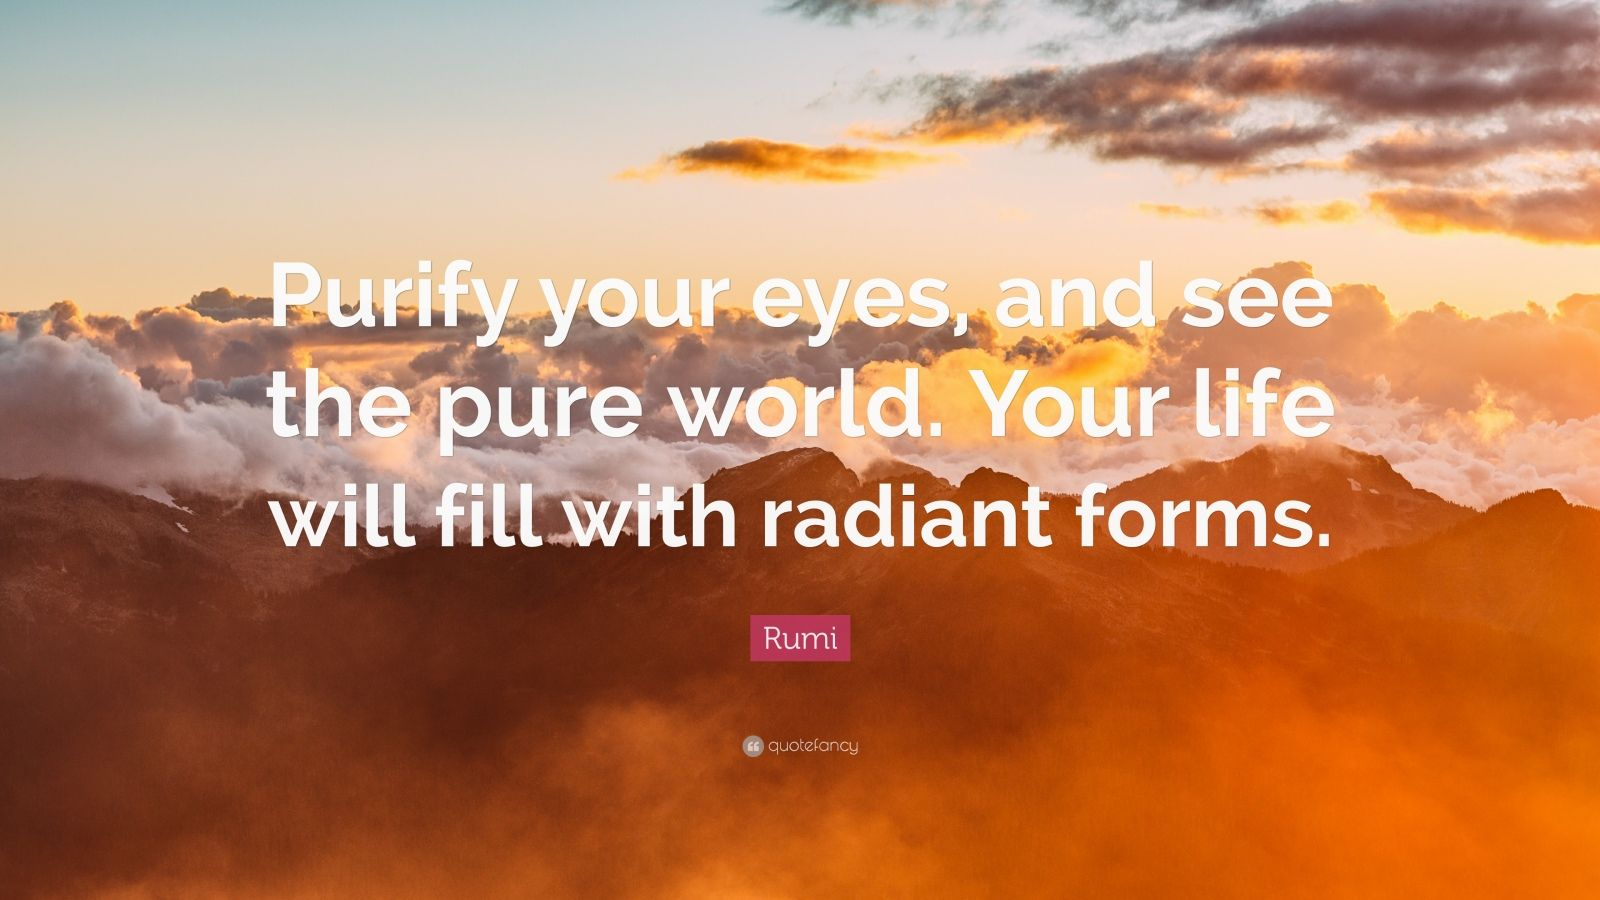 Rumi Quotes On Life Rumi Quotes 100 Wallpapers  Quotefancy